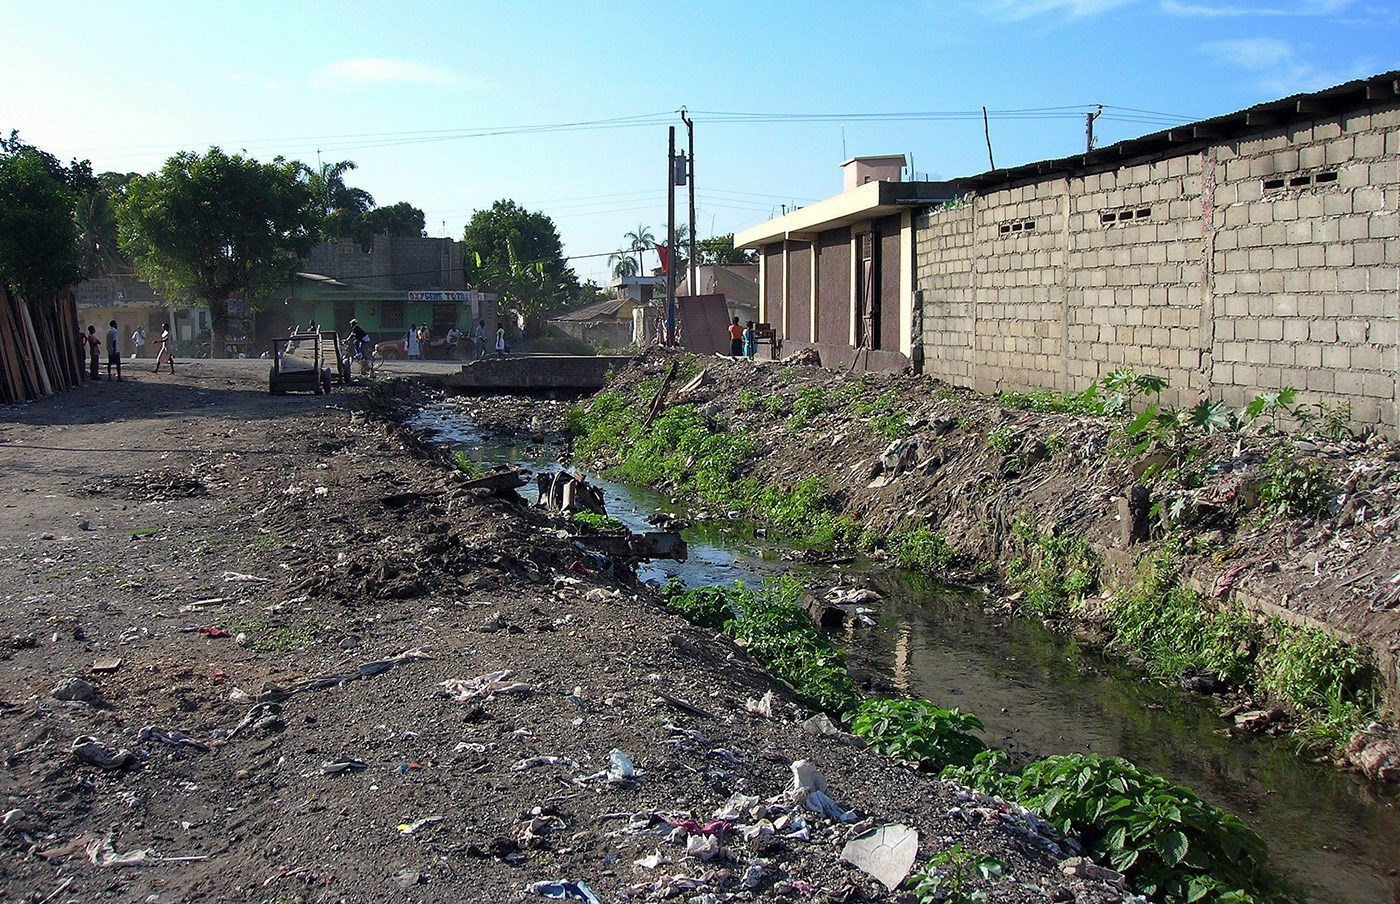 Poor sanitation in the area of Dlo Gervier, Cap-Haitien, Haiti : solid waste on the ground, drainage channel blocked, plastic bags containing excreta, road damaged by runoff water.